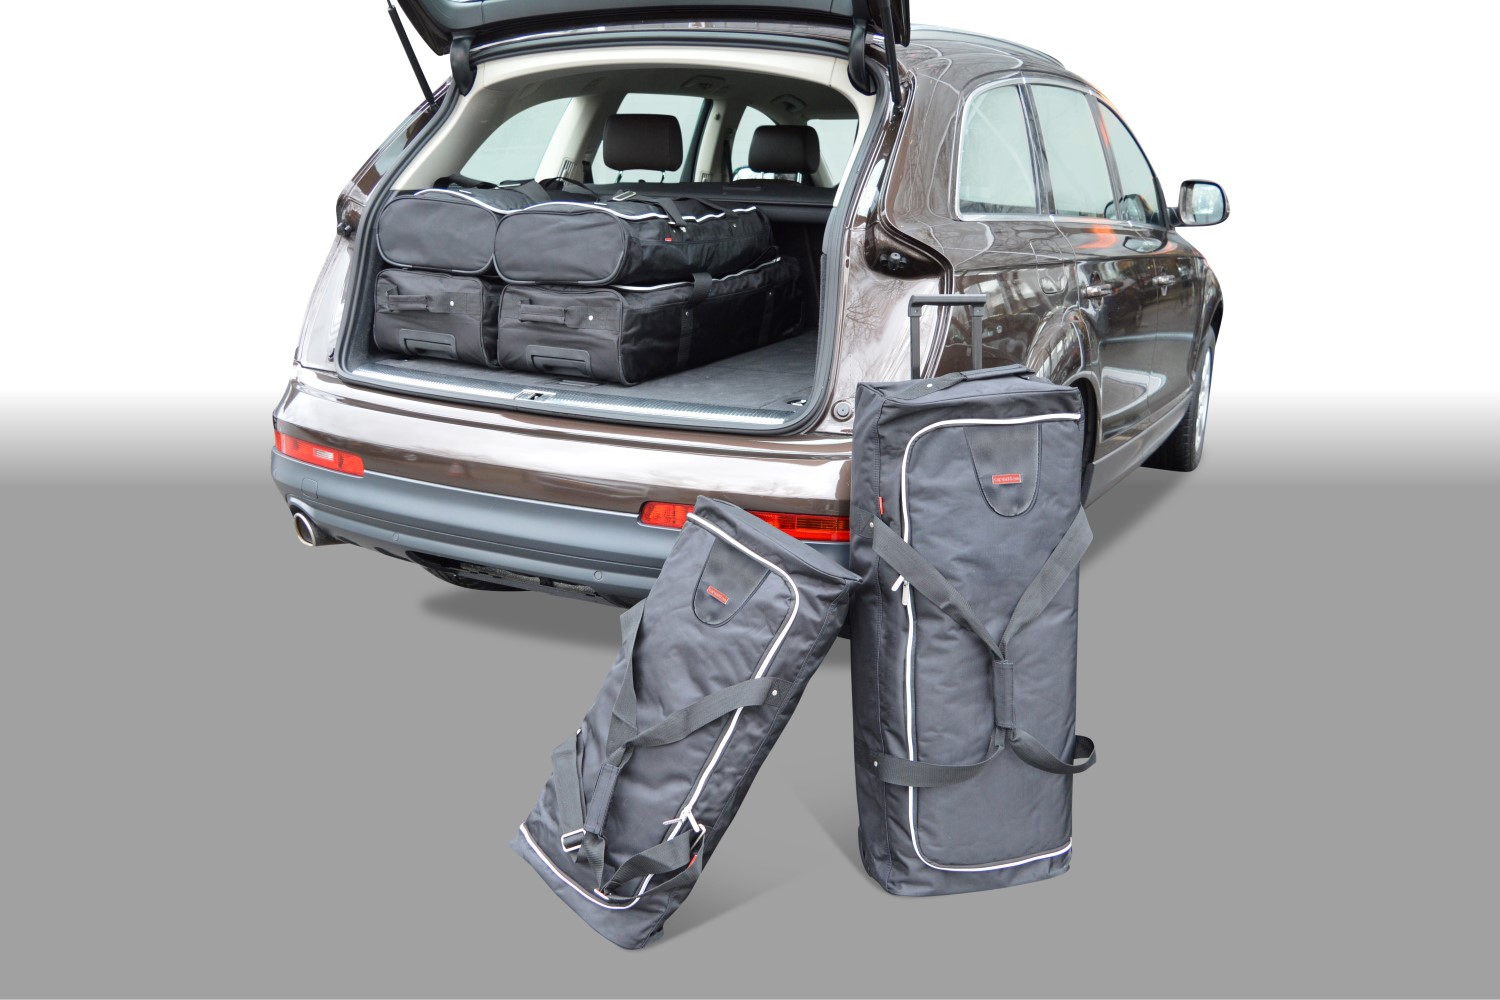 q7 4l 2006 2015 audi q7 4l 2006 2015 car bags. Black Bedroom Furniture Sets. Home Design Ideas